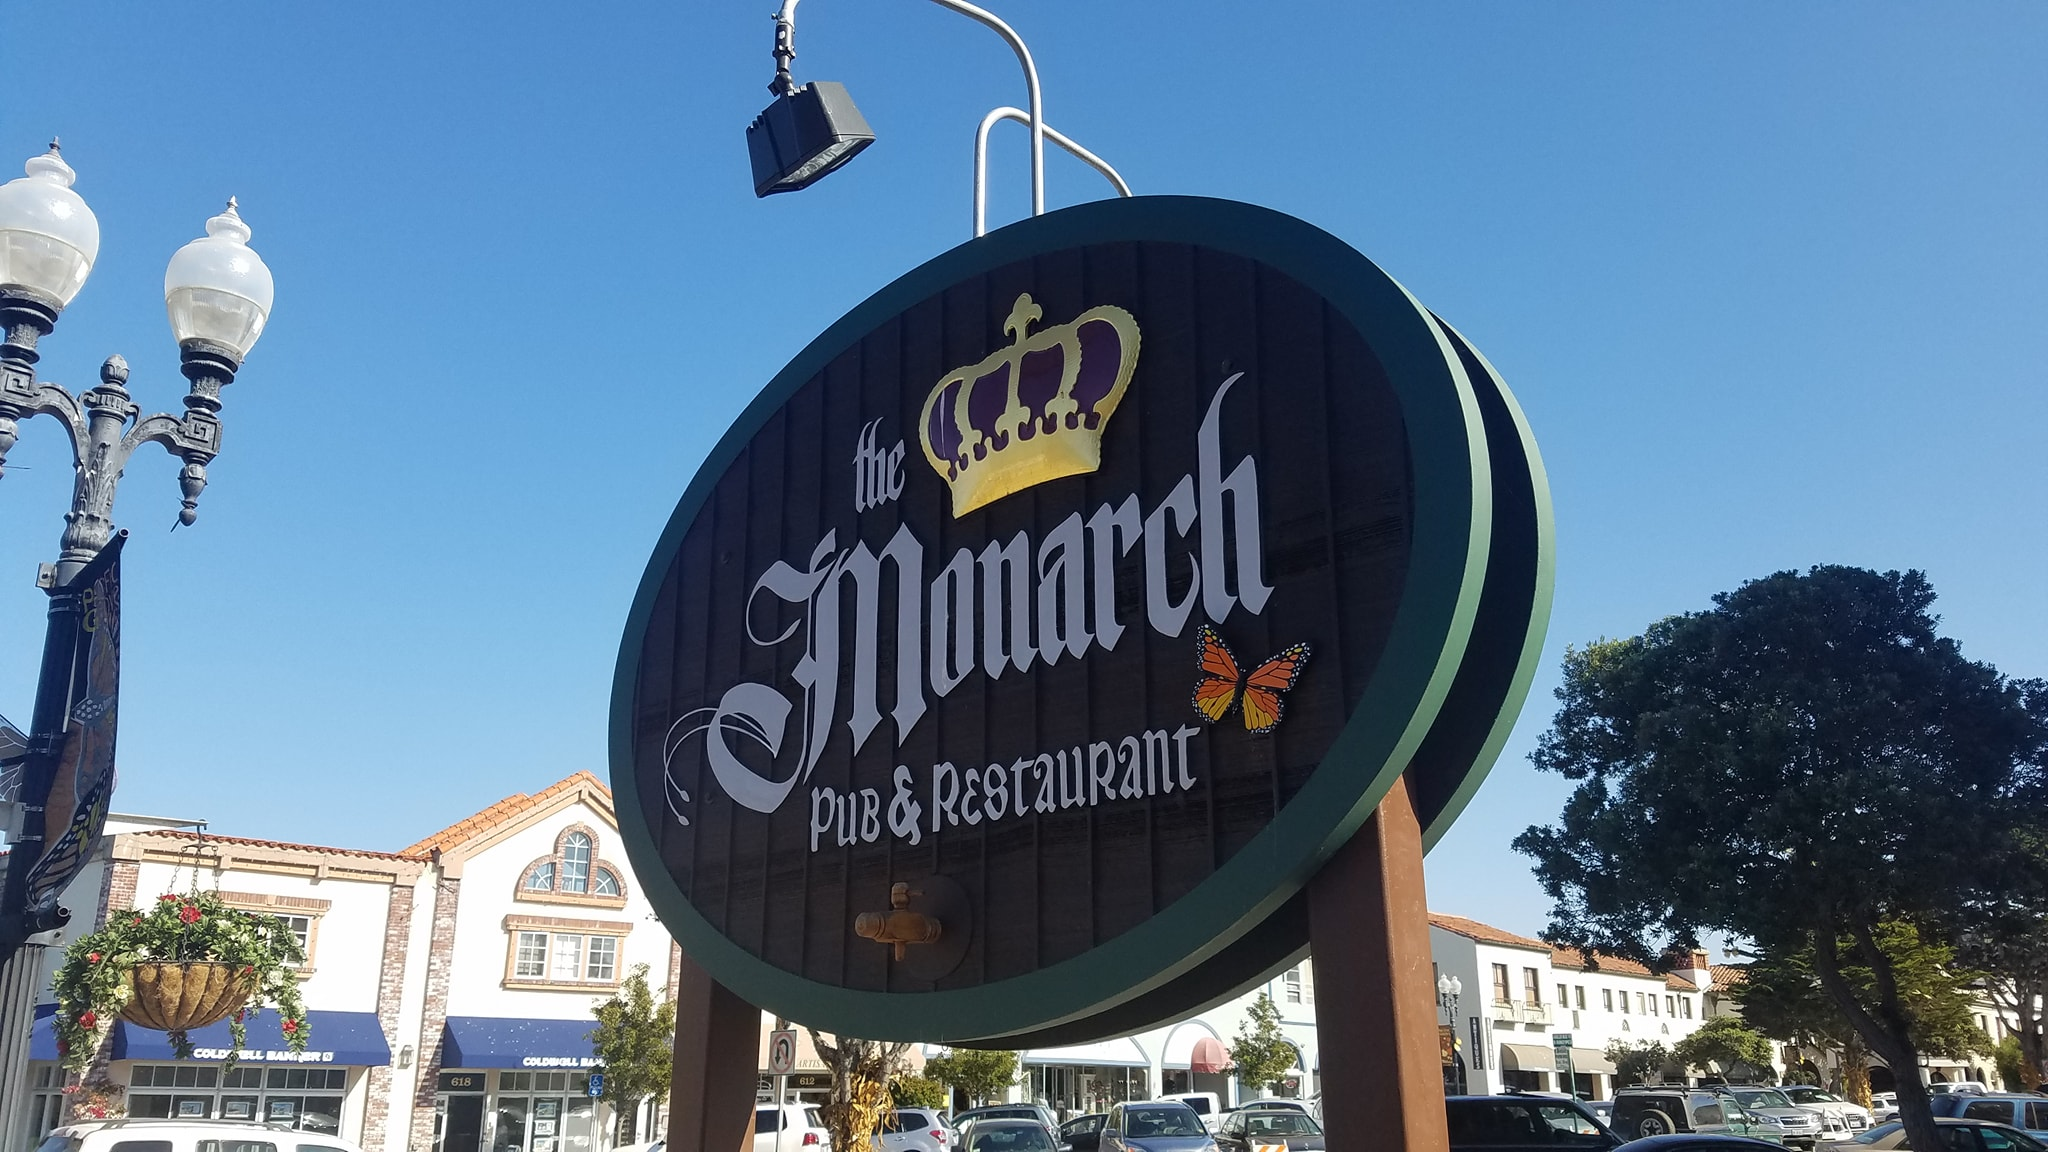 The Monarch Pub & Restaurant